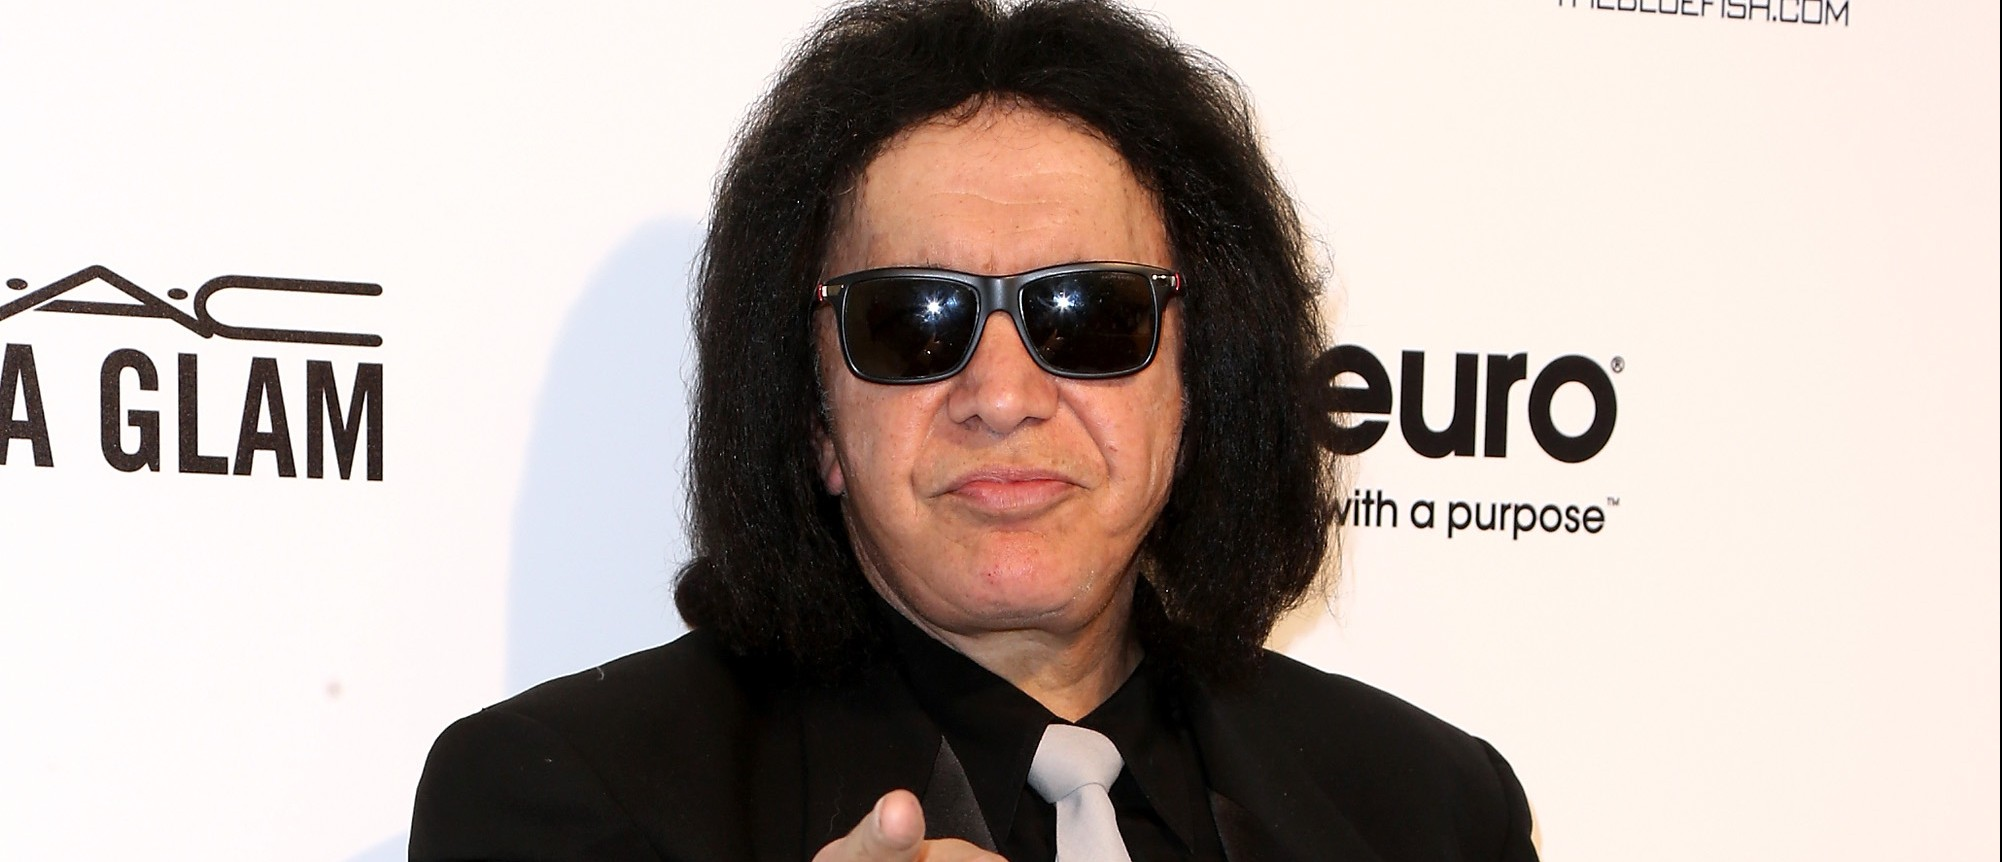 Gene Simmons talks about Donald Trump in new interview (Photo: Getty Images)